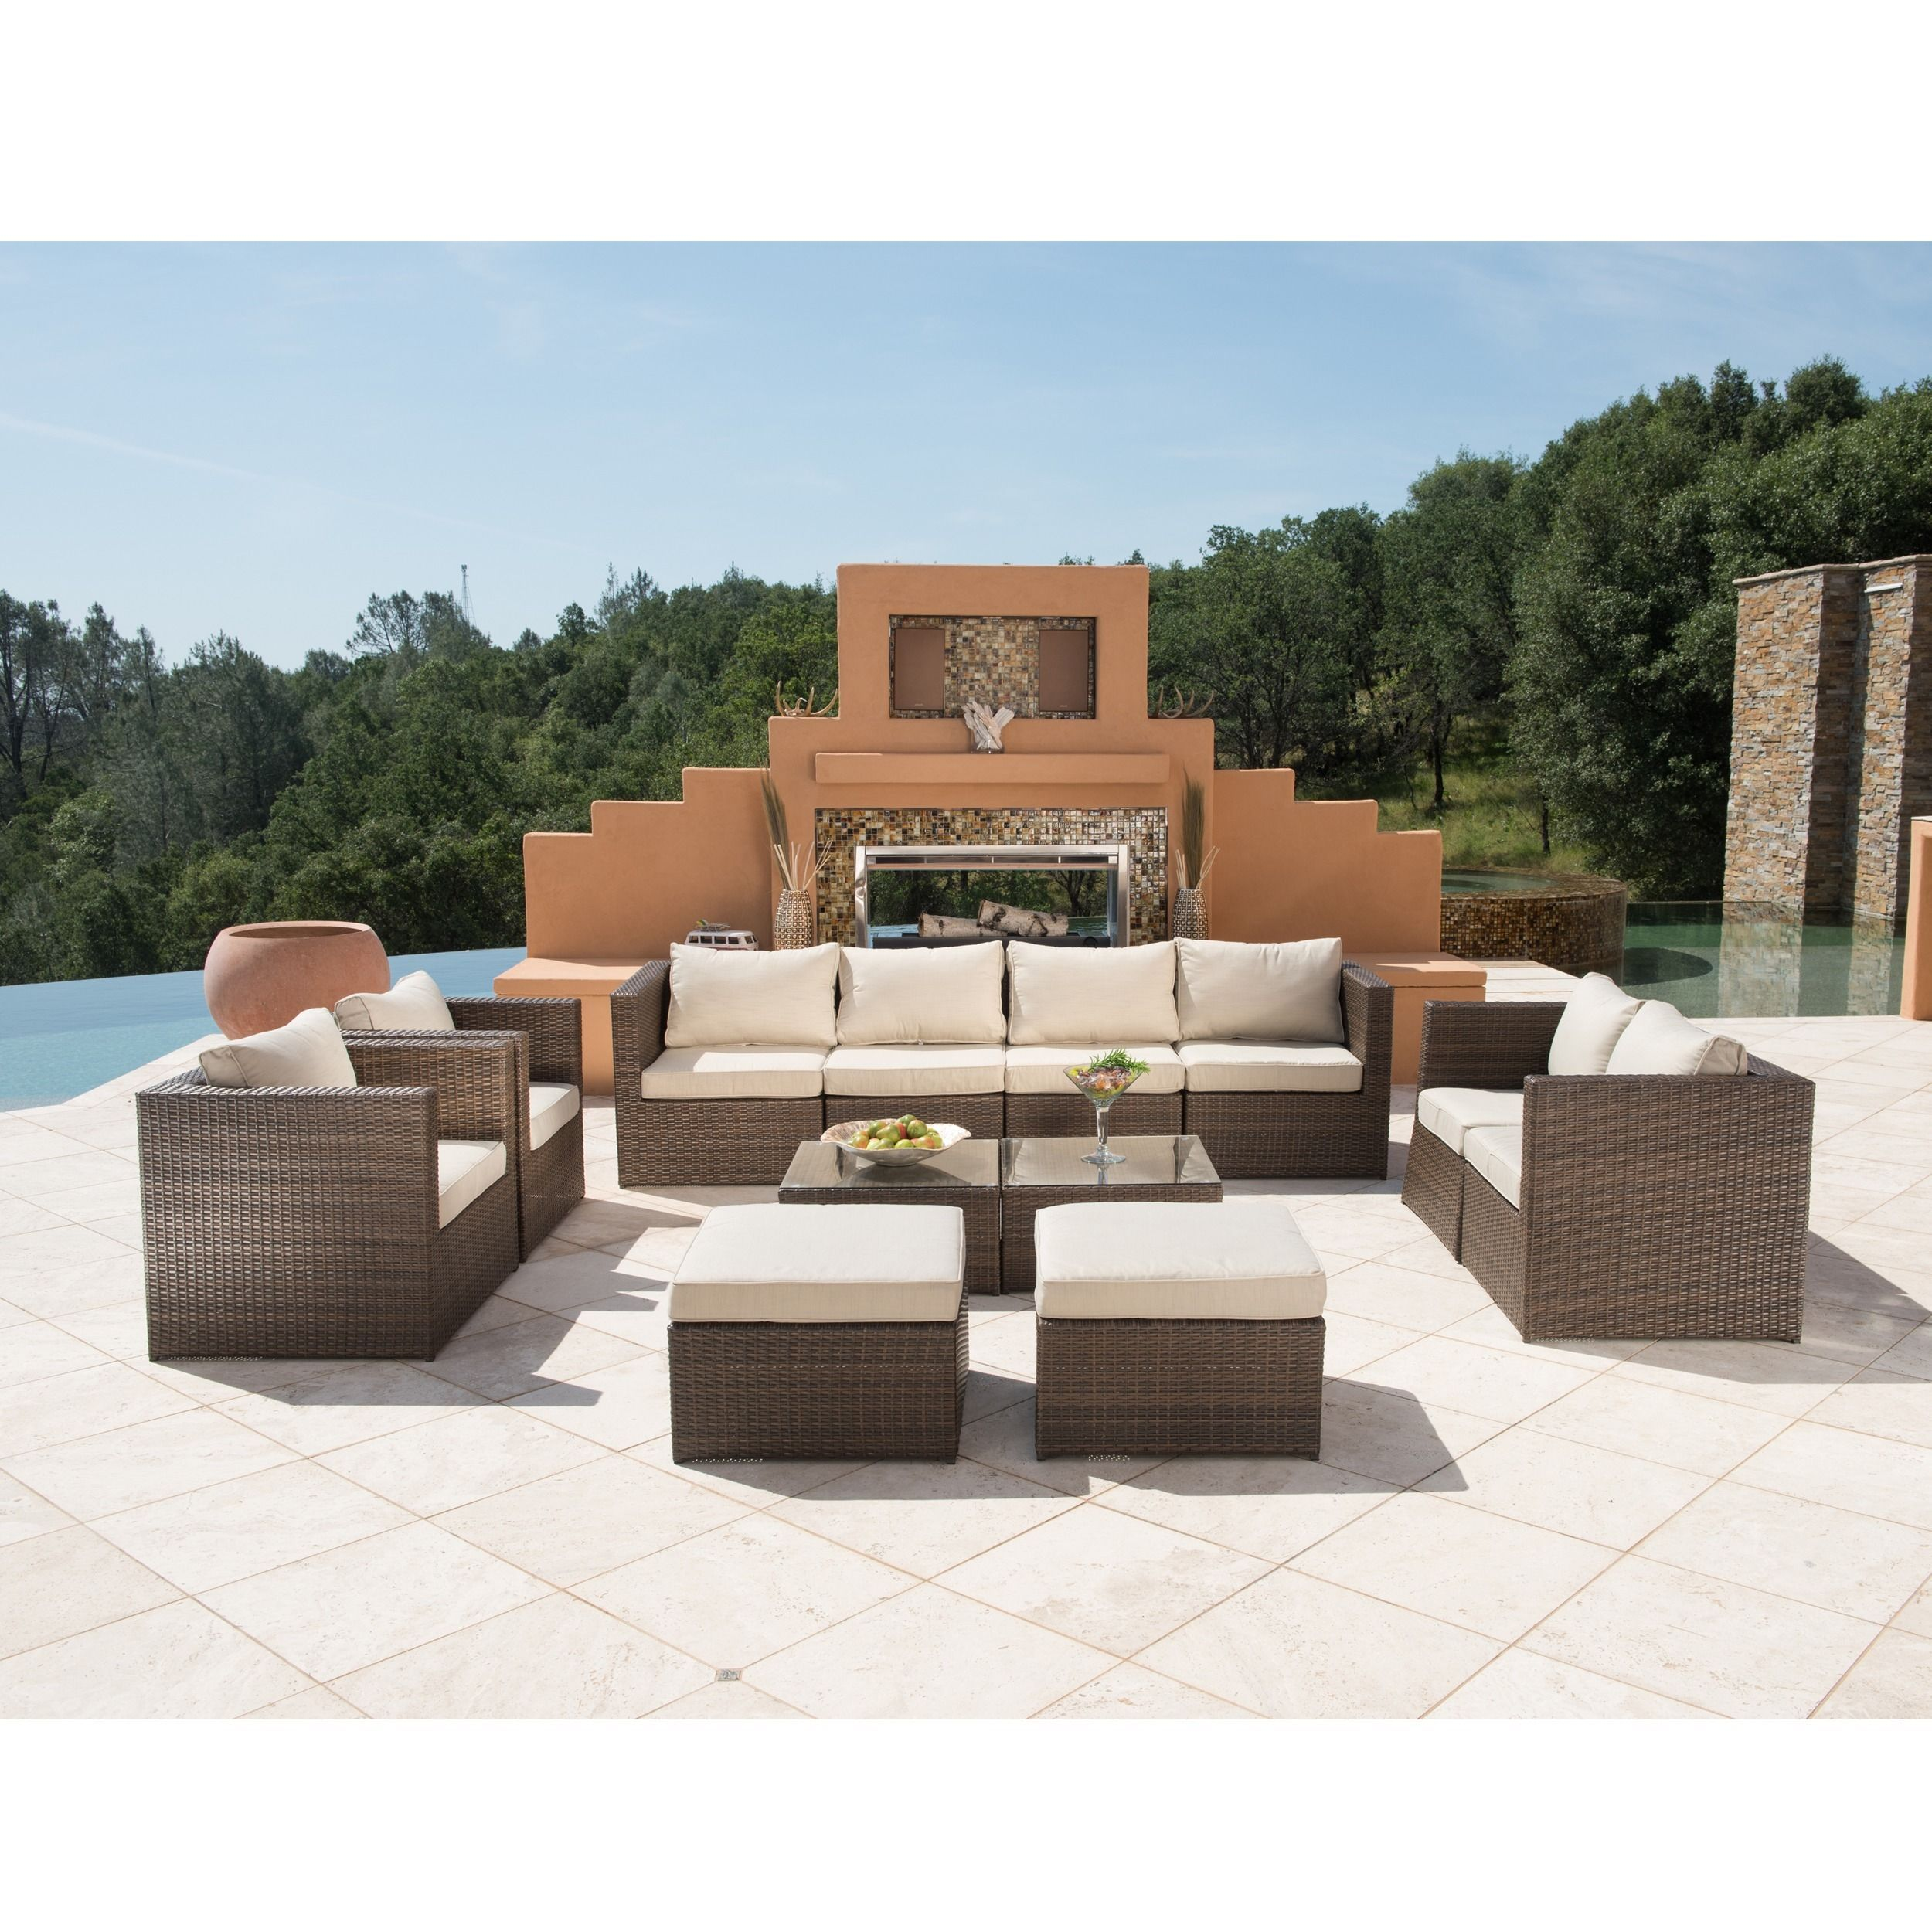 Corvus Trey Outdoor 12 piece Brown Wicker Furniture Set with Glass